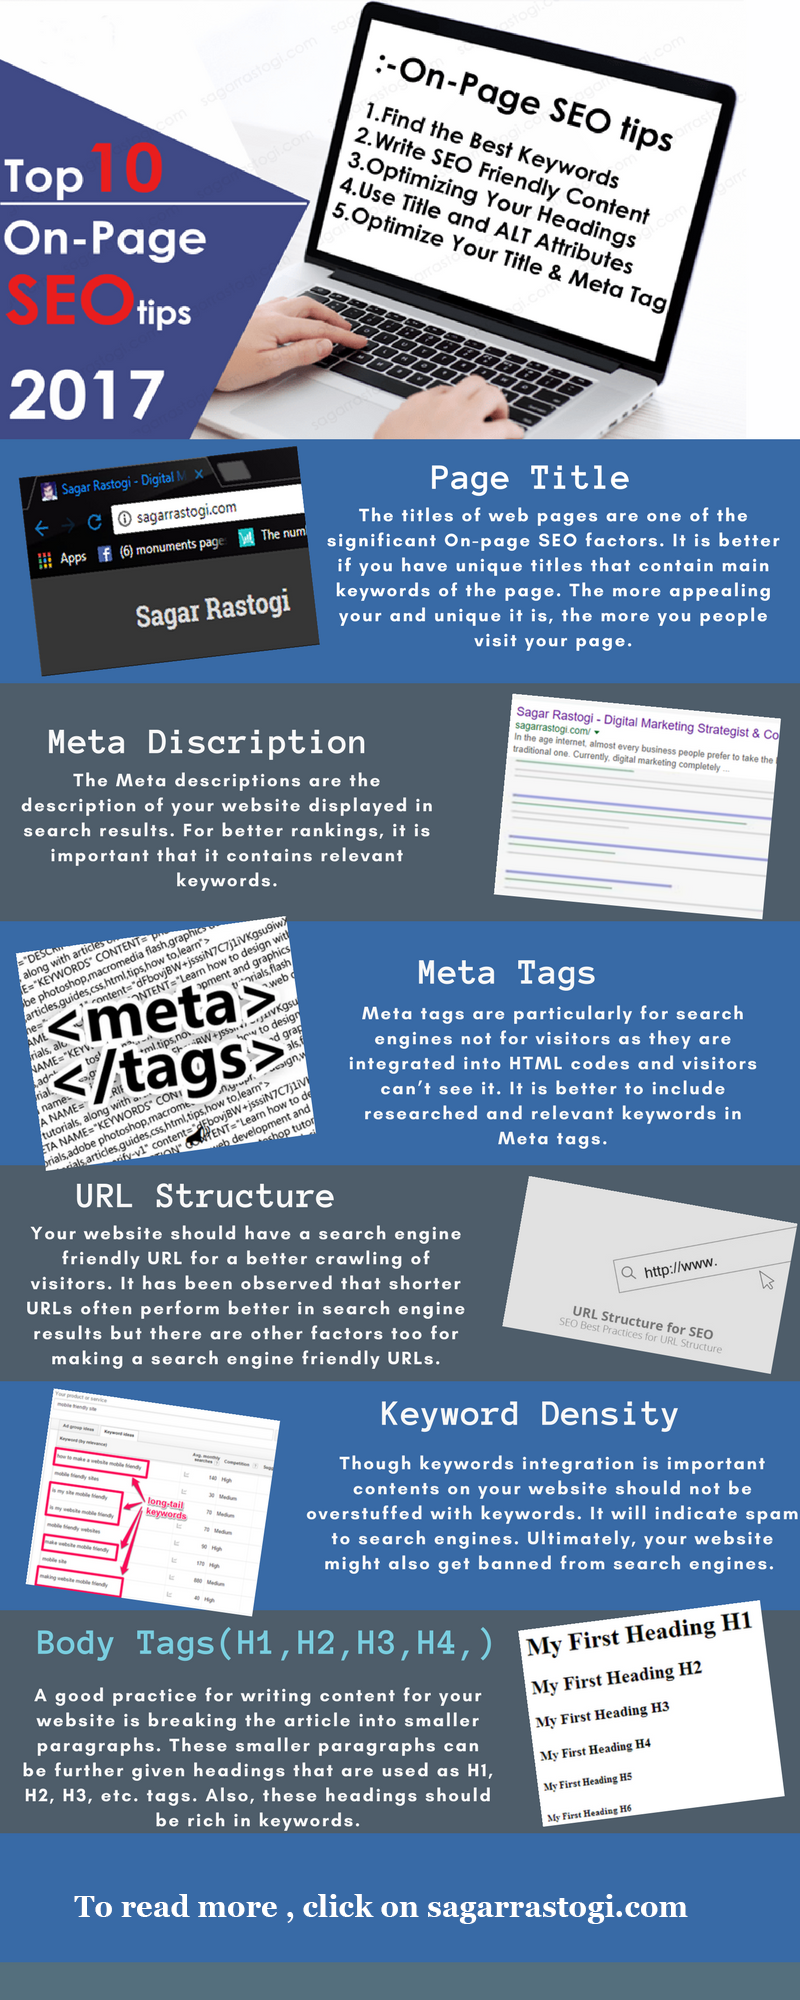 top 10 on page SEO tips